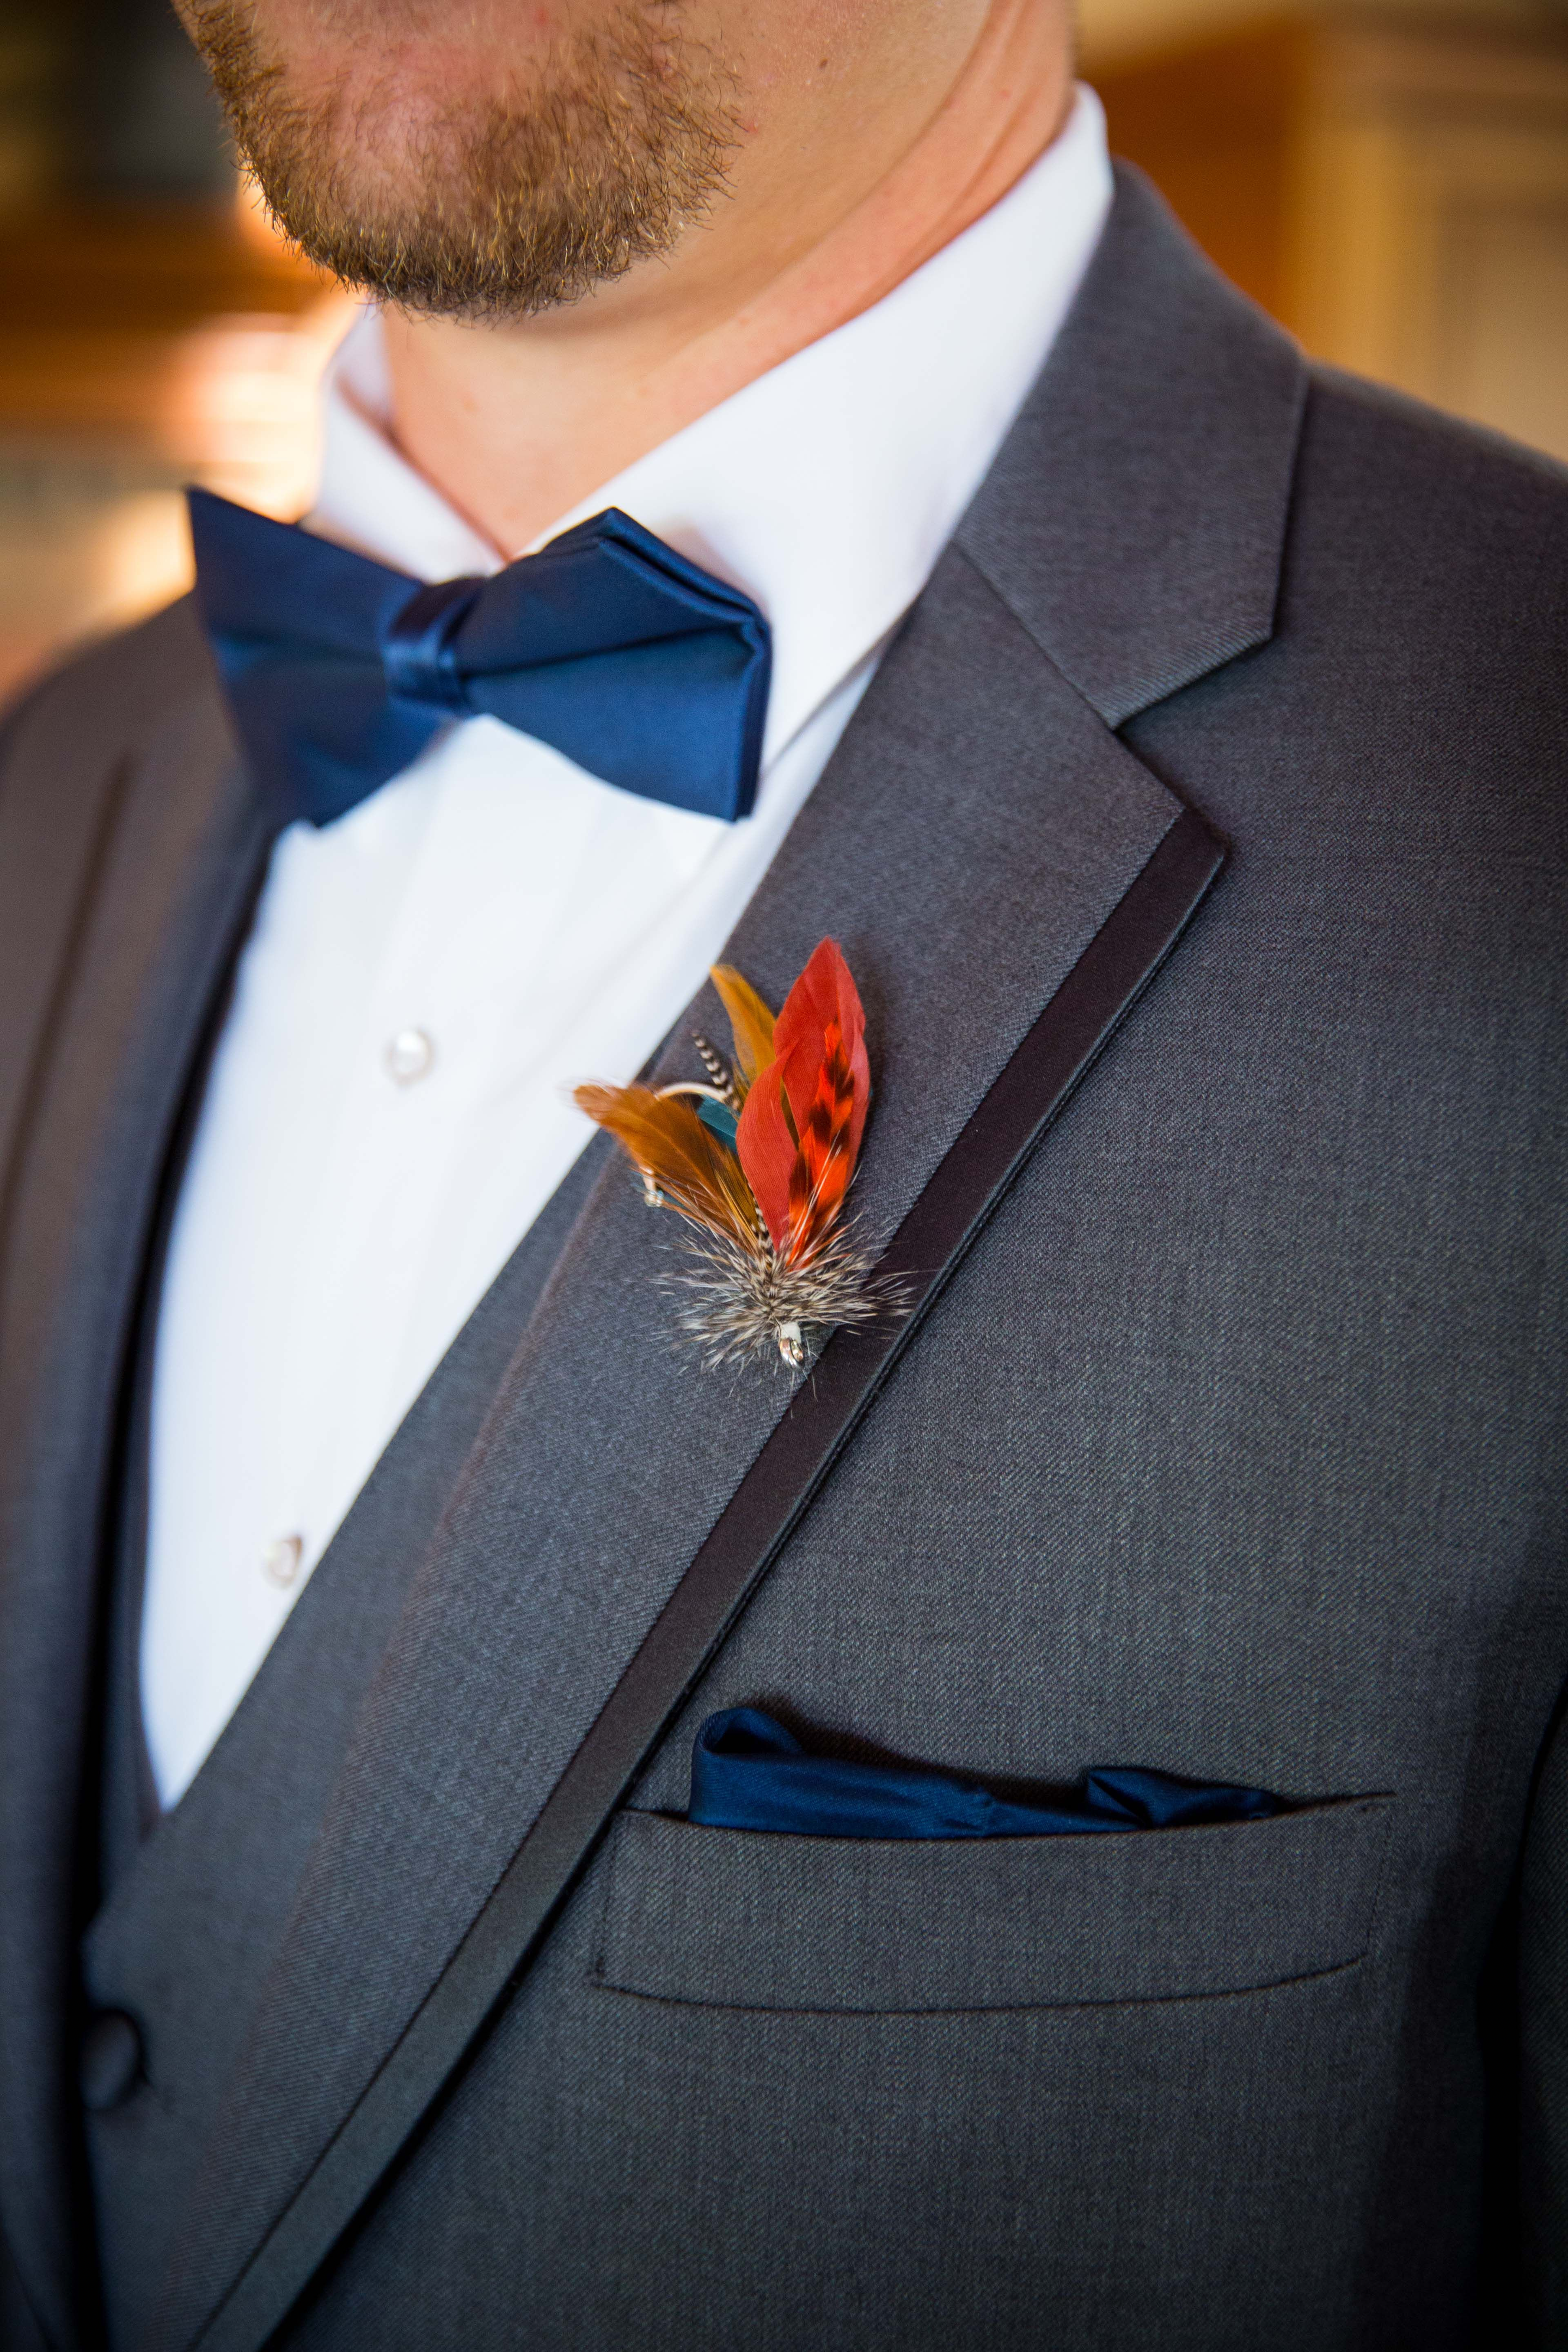 e595a4a42dec Fly Fish Boutonniere.... WE WILL GET CREATIVE FOR THIS BUT GENERALLY ITS A  FISHING BOUT.